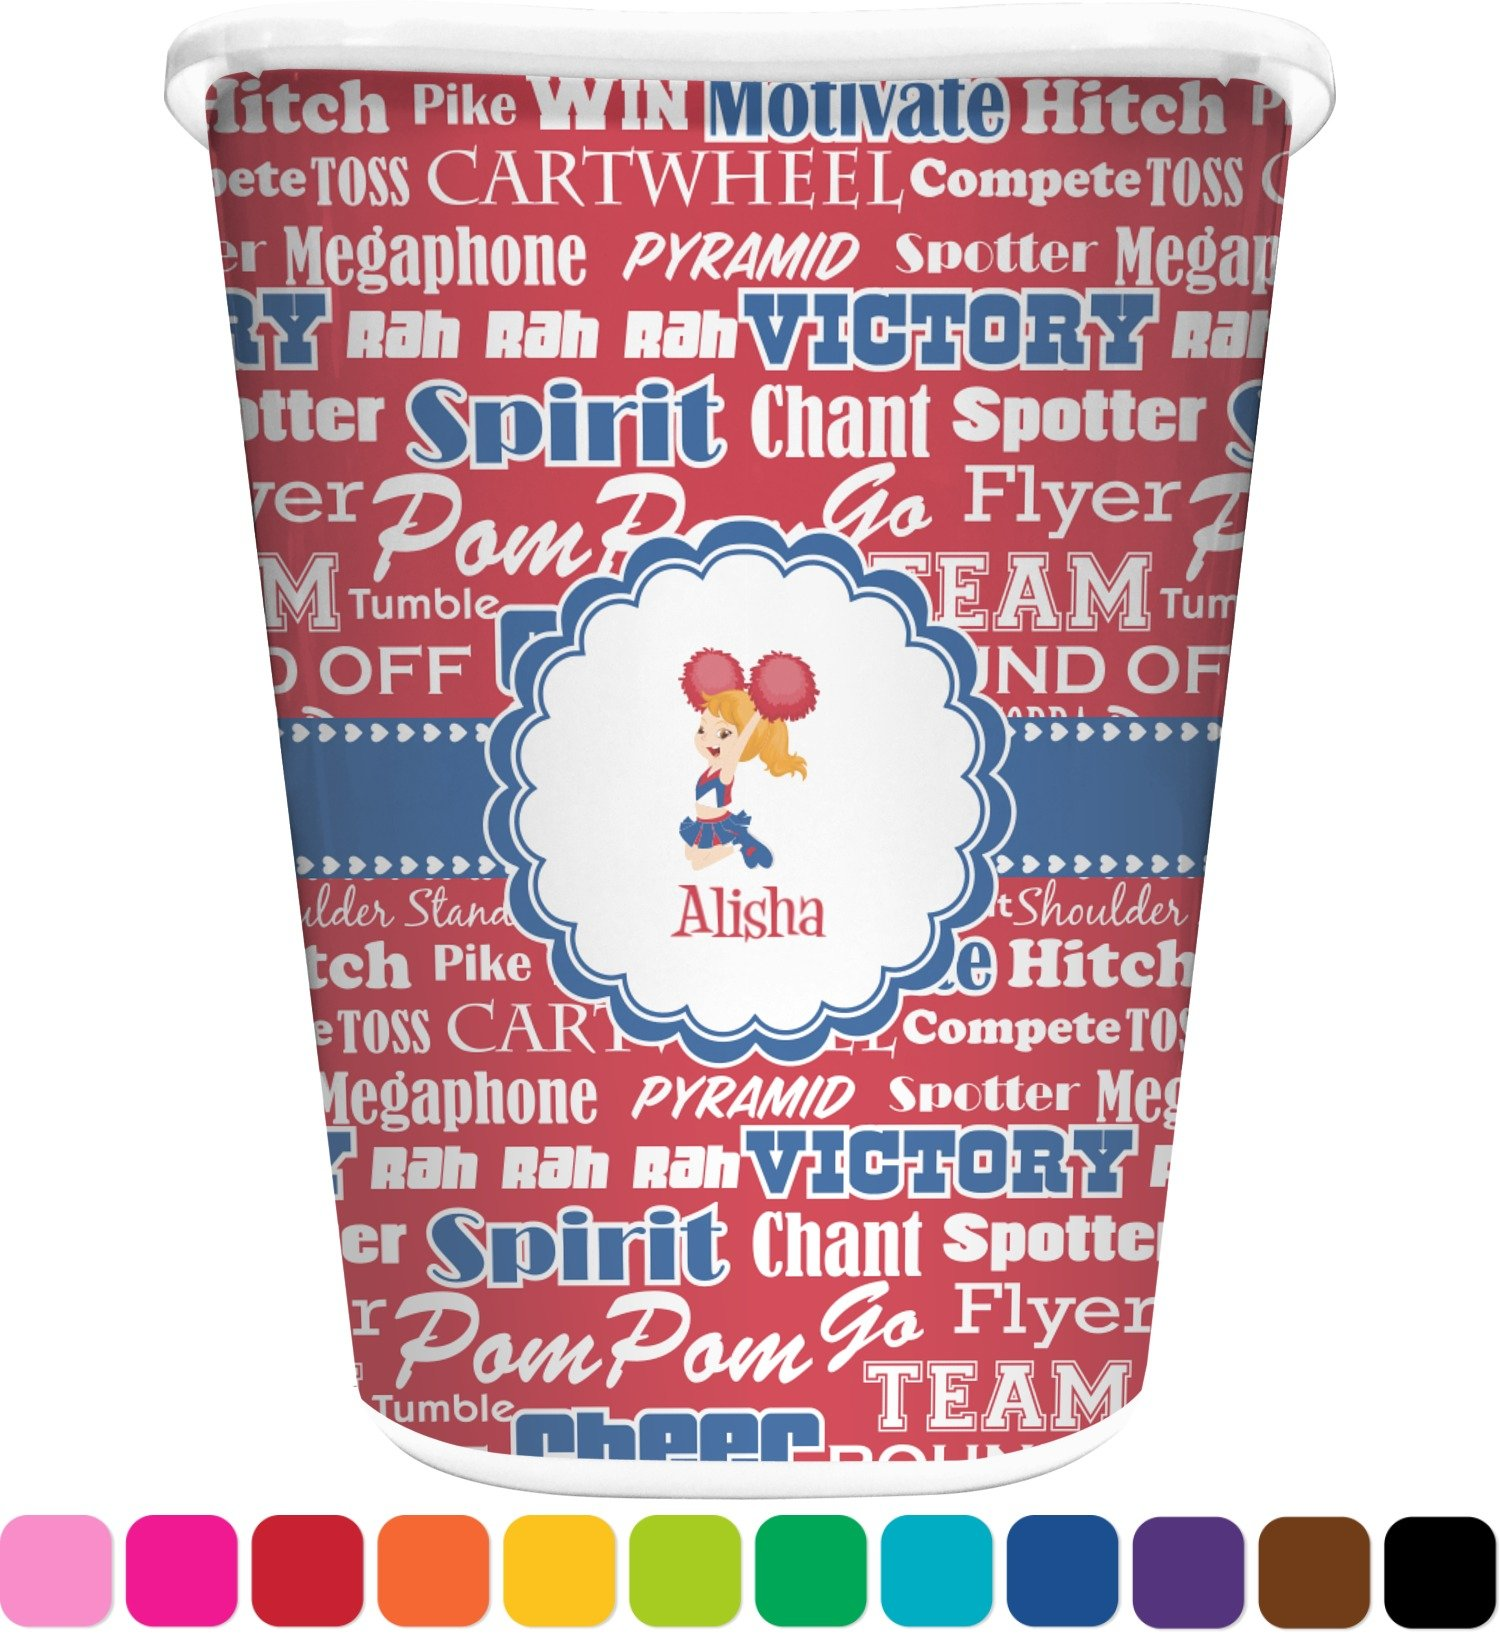 RNK Shops Cheerleader Waste Basket - Single Sided (White) (Personalized)